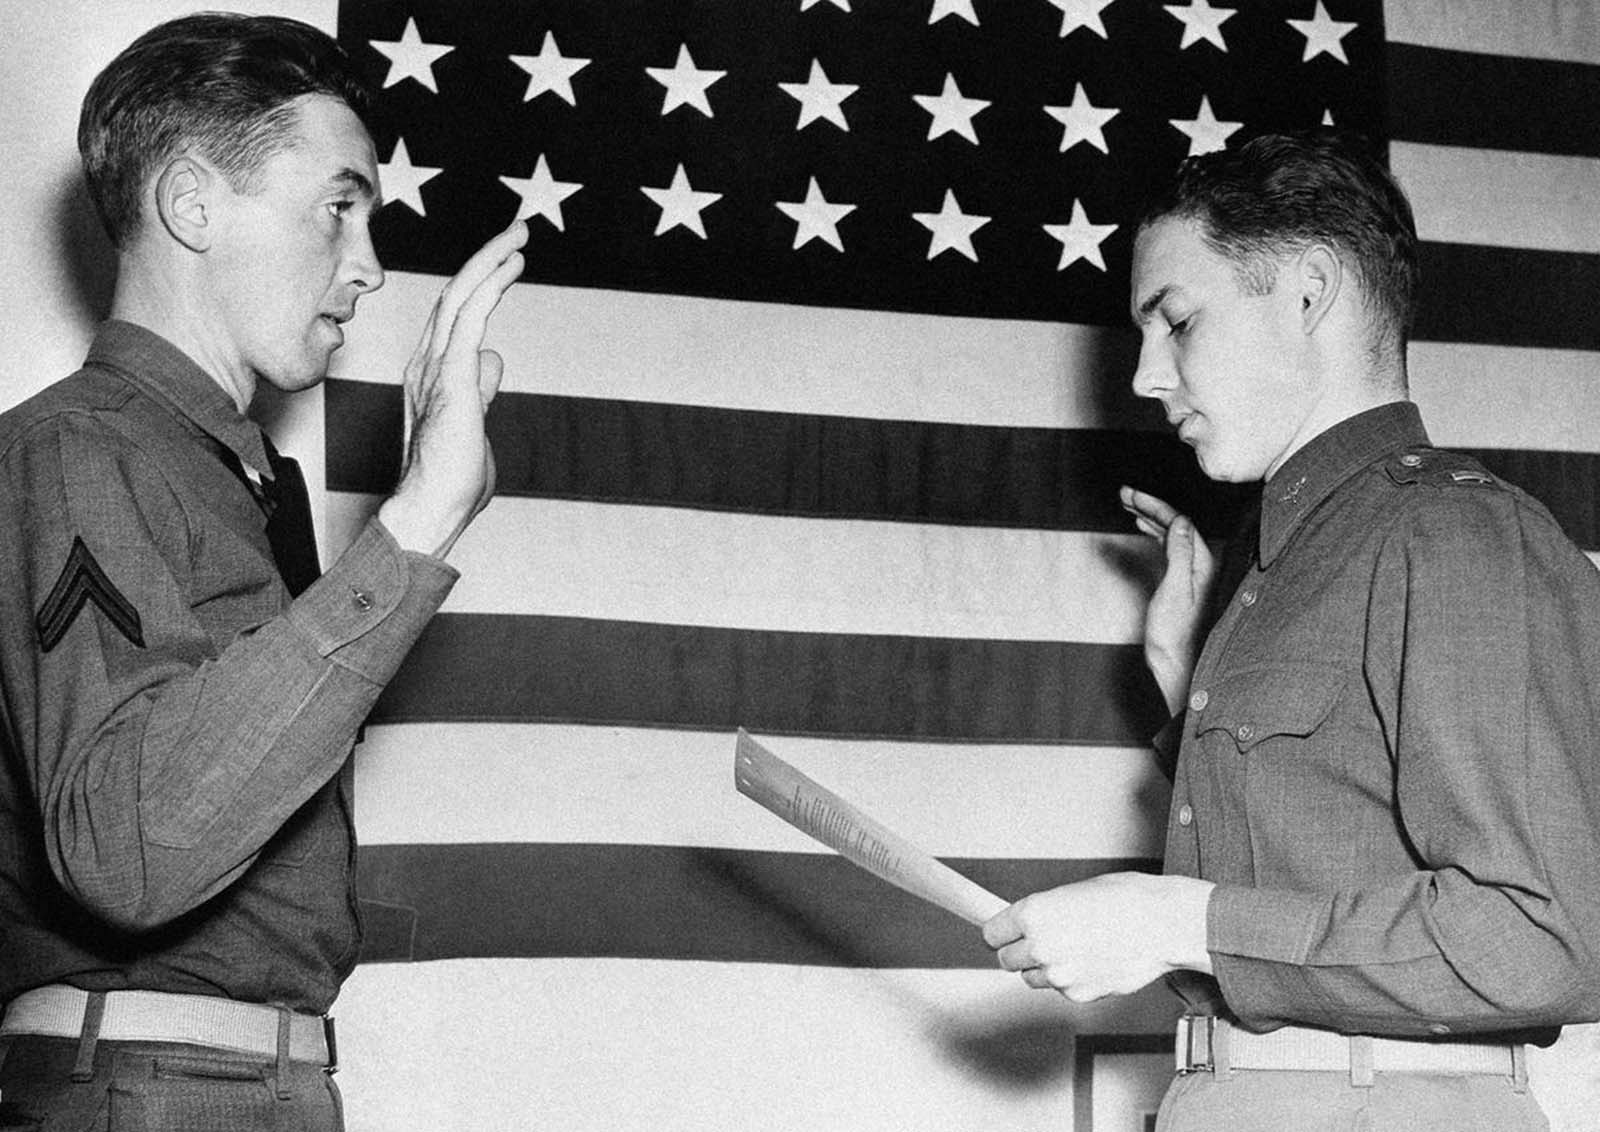 Jimmy Stewart, former movie star, is sworn in as a second lieutenant in the U.S. Air Corps by Lt. E.L. Reid, personnel officer of the west coast training center at Moffett Field, California, on January 1, 1941. Stewart was one of Hollywood's most popular actors before he was inducted into the Army in 1941.